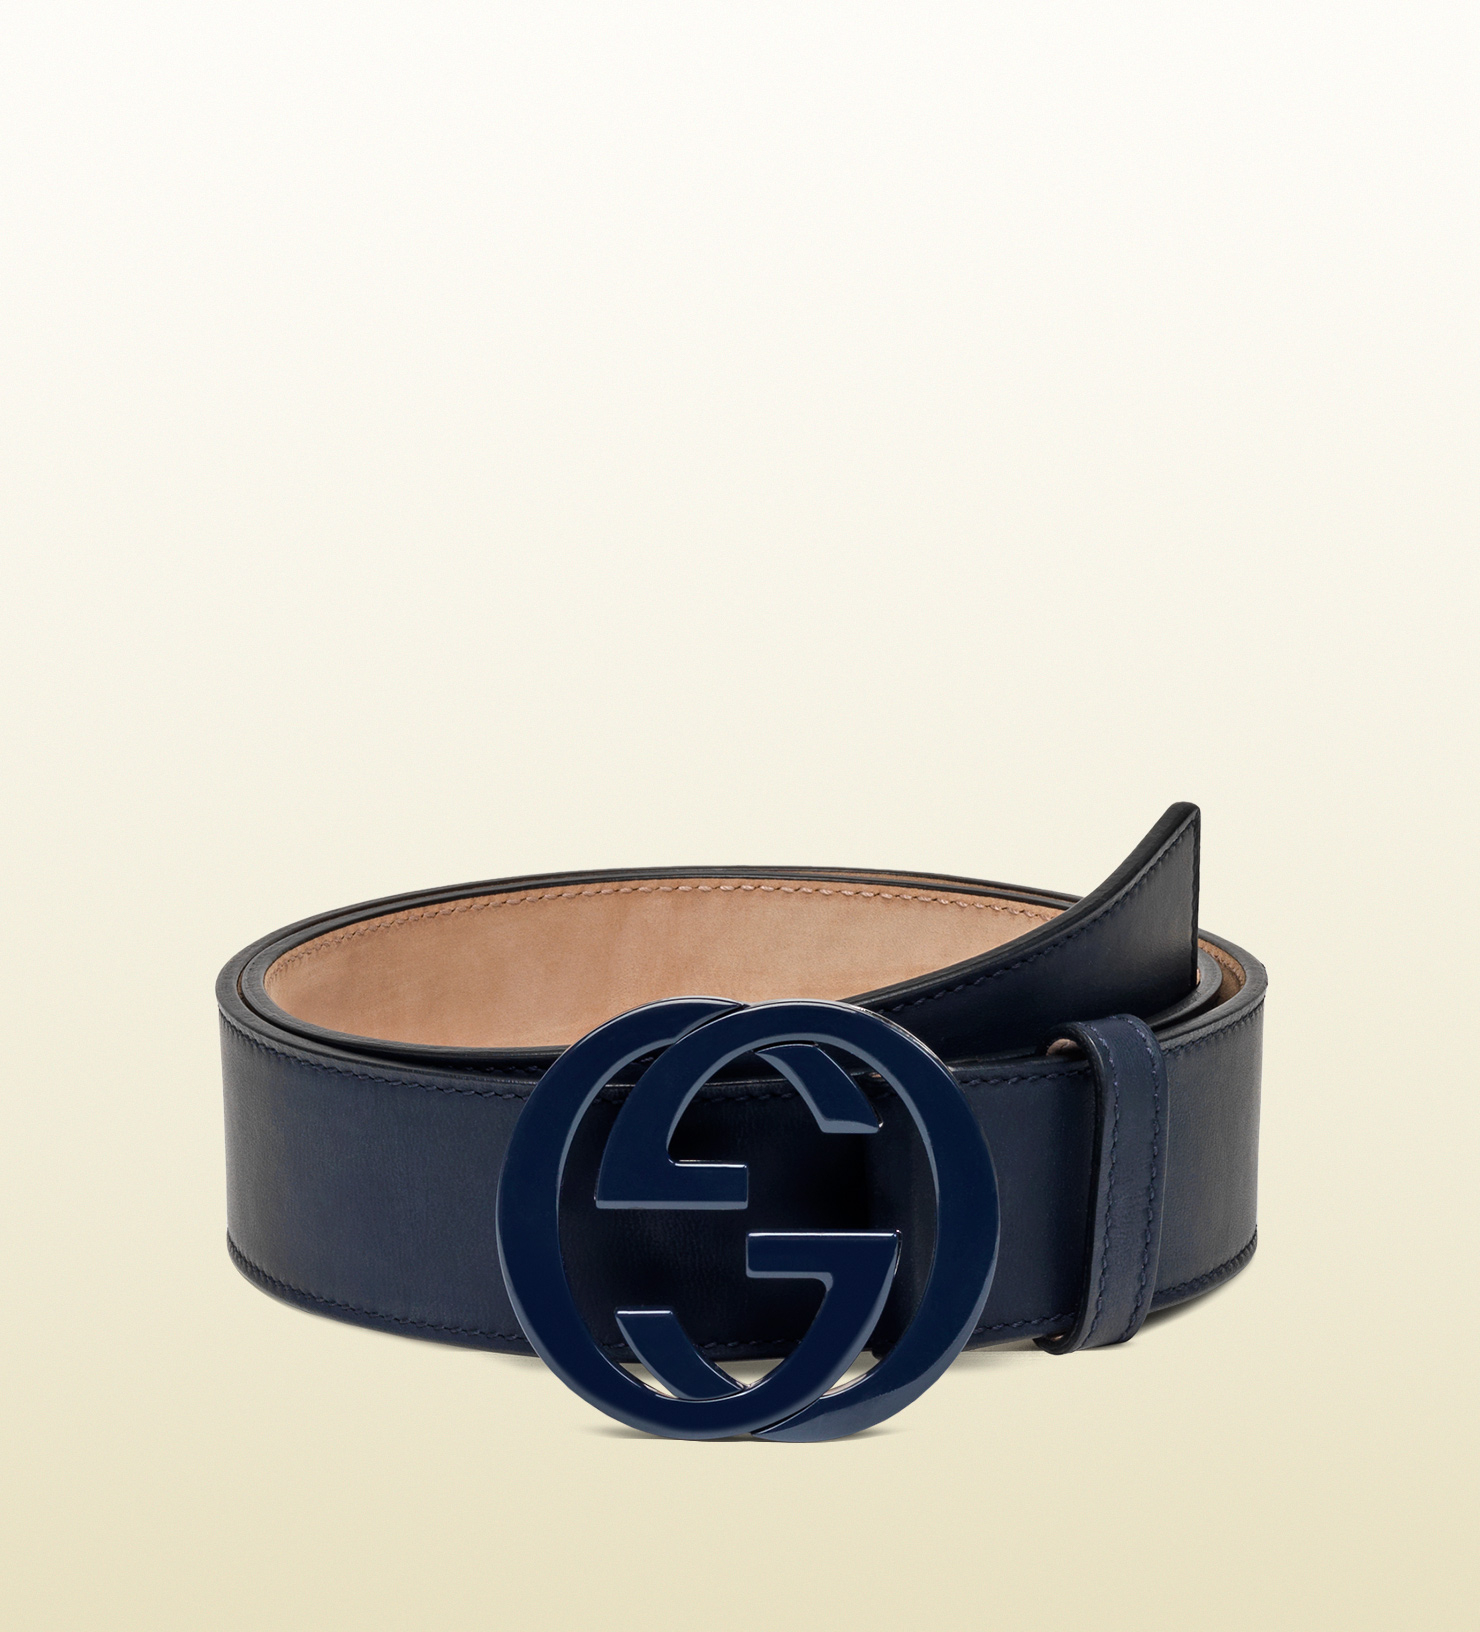 0fb05f33ca48a Lyst - Gucci Leather Belt With Interlocking G Buckle in Blue for Men